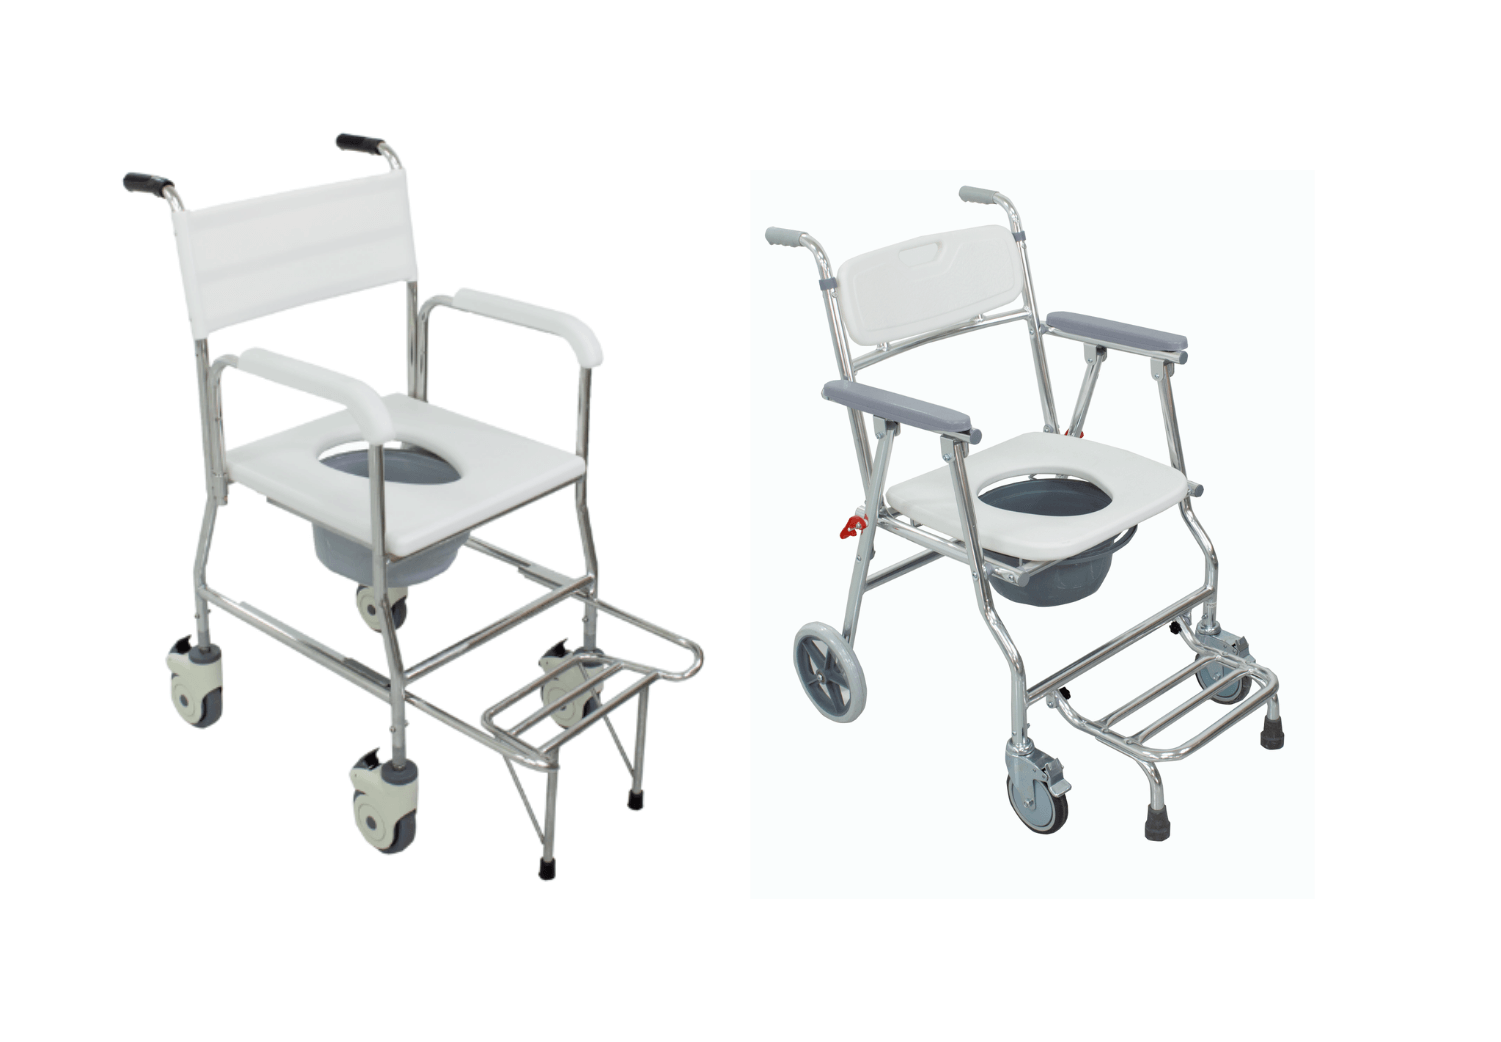 Toileting-commode-chairs-foldable-and-can-shower-with-it